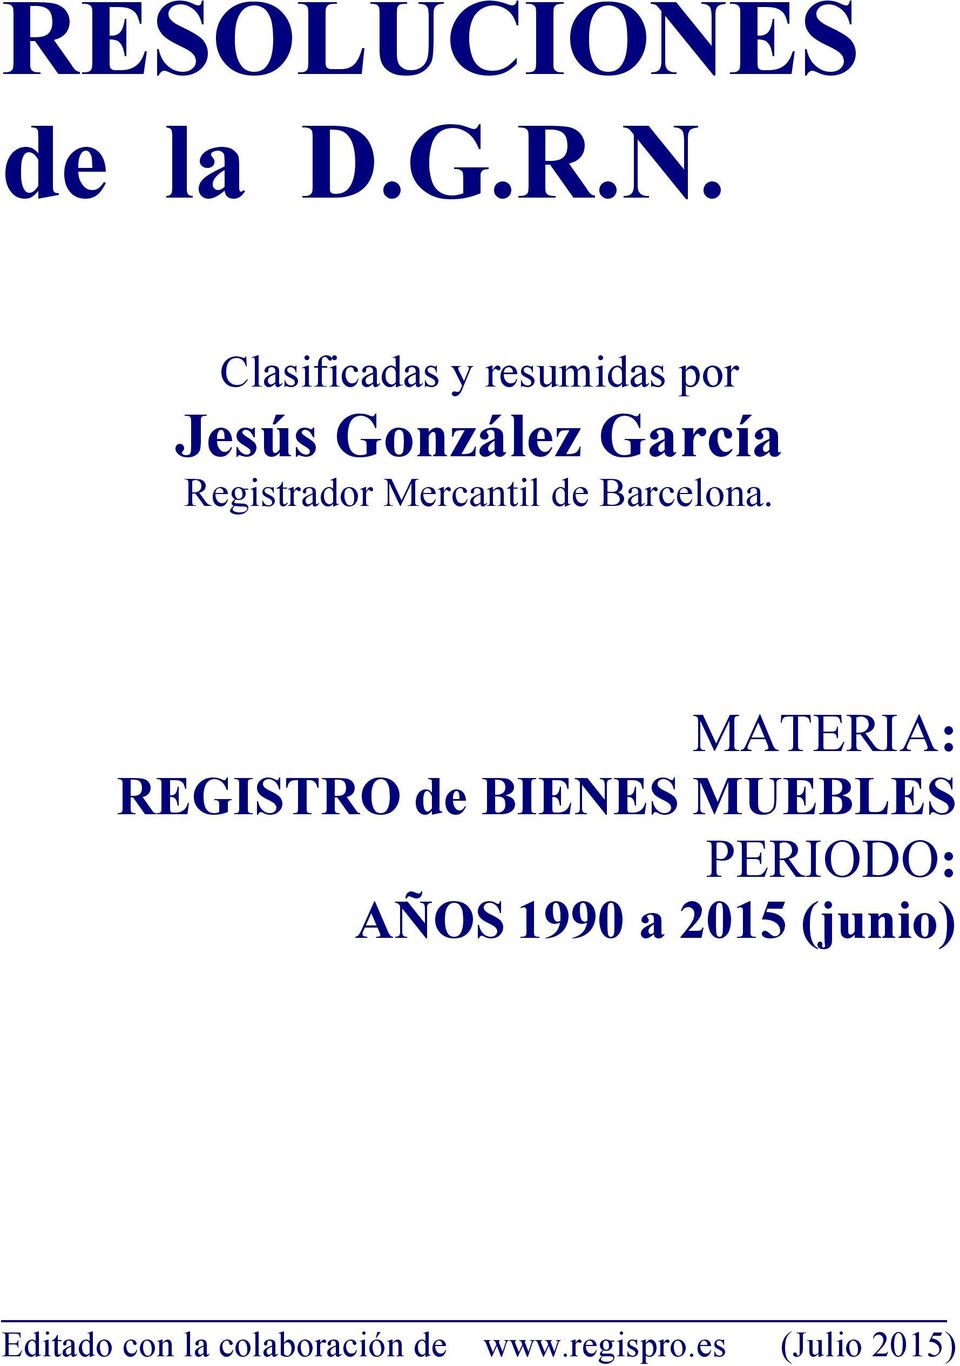 Resoluciones de la d g r n pdf for Registro de bienes muebles malaga